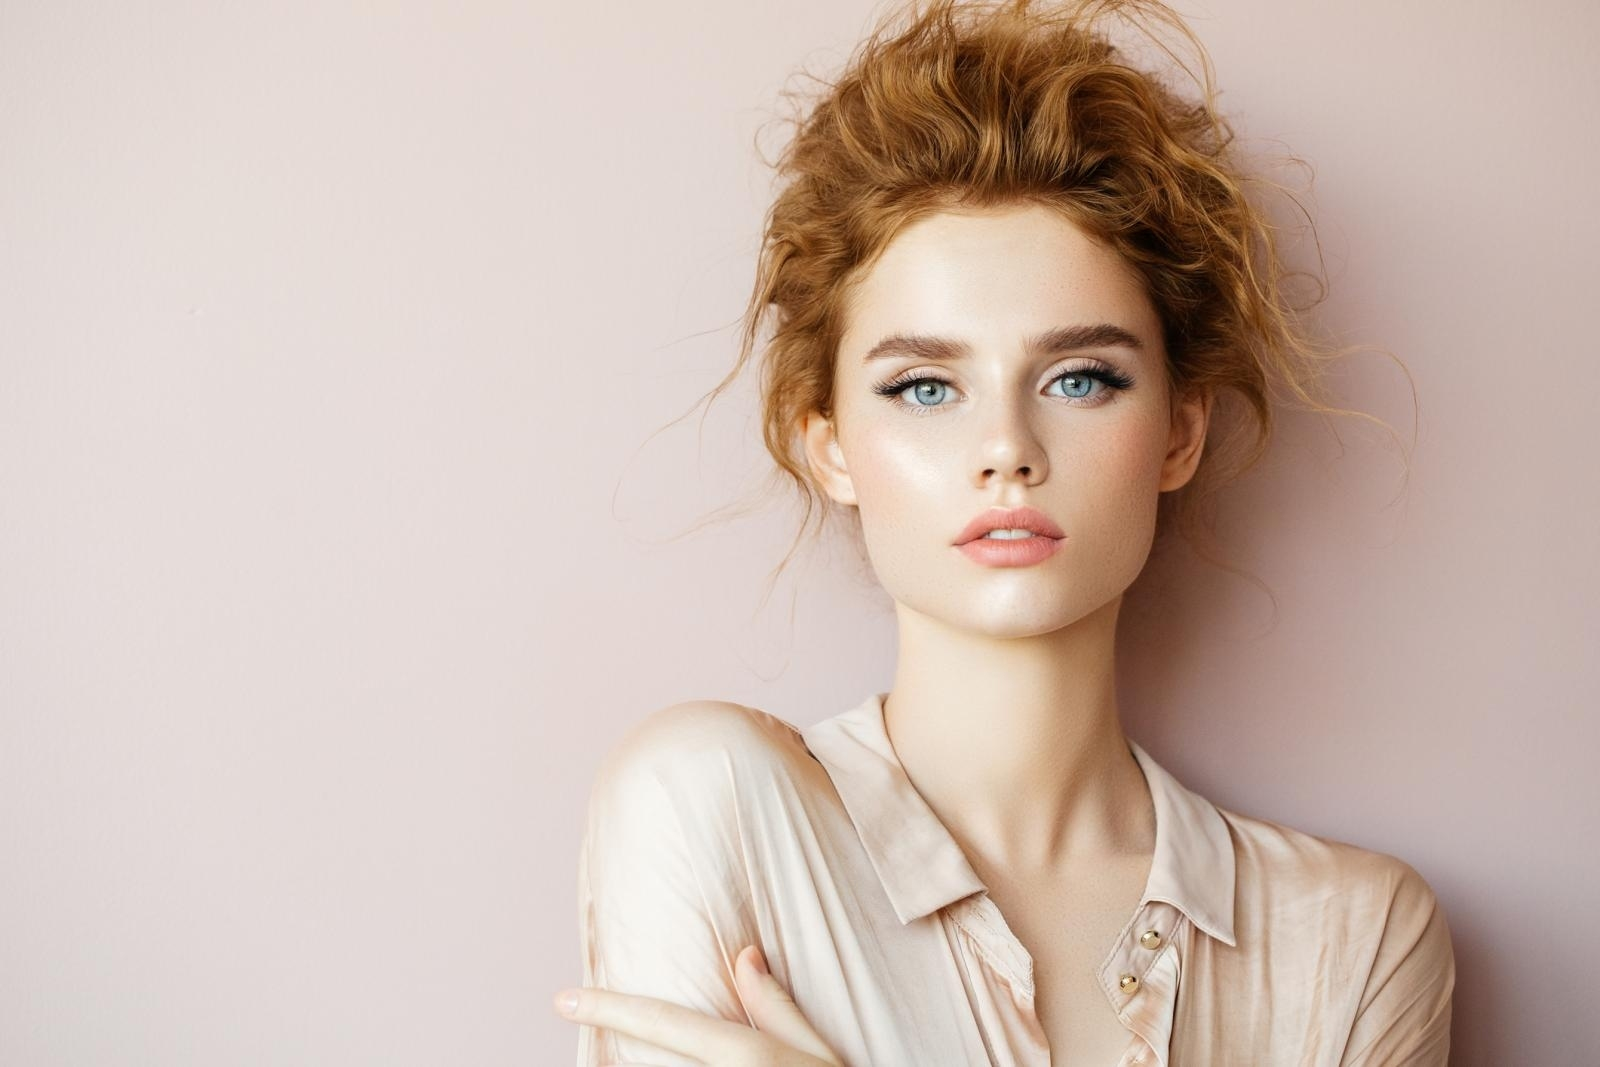 Makeup That Goes With Red Hair | Lovetoknow pertaining to Eyeshadow For Red Hair And Hazel Eyes